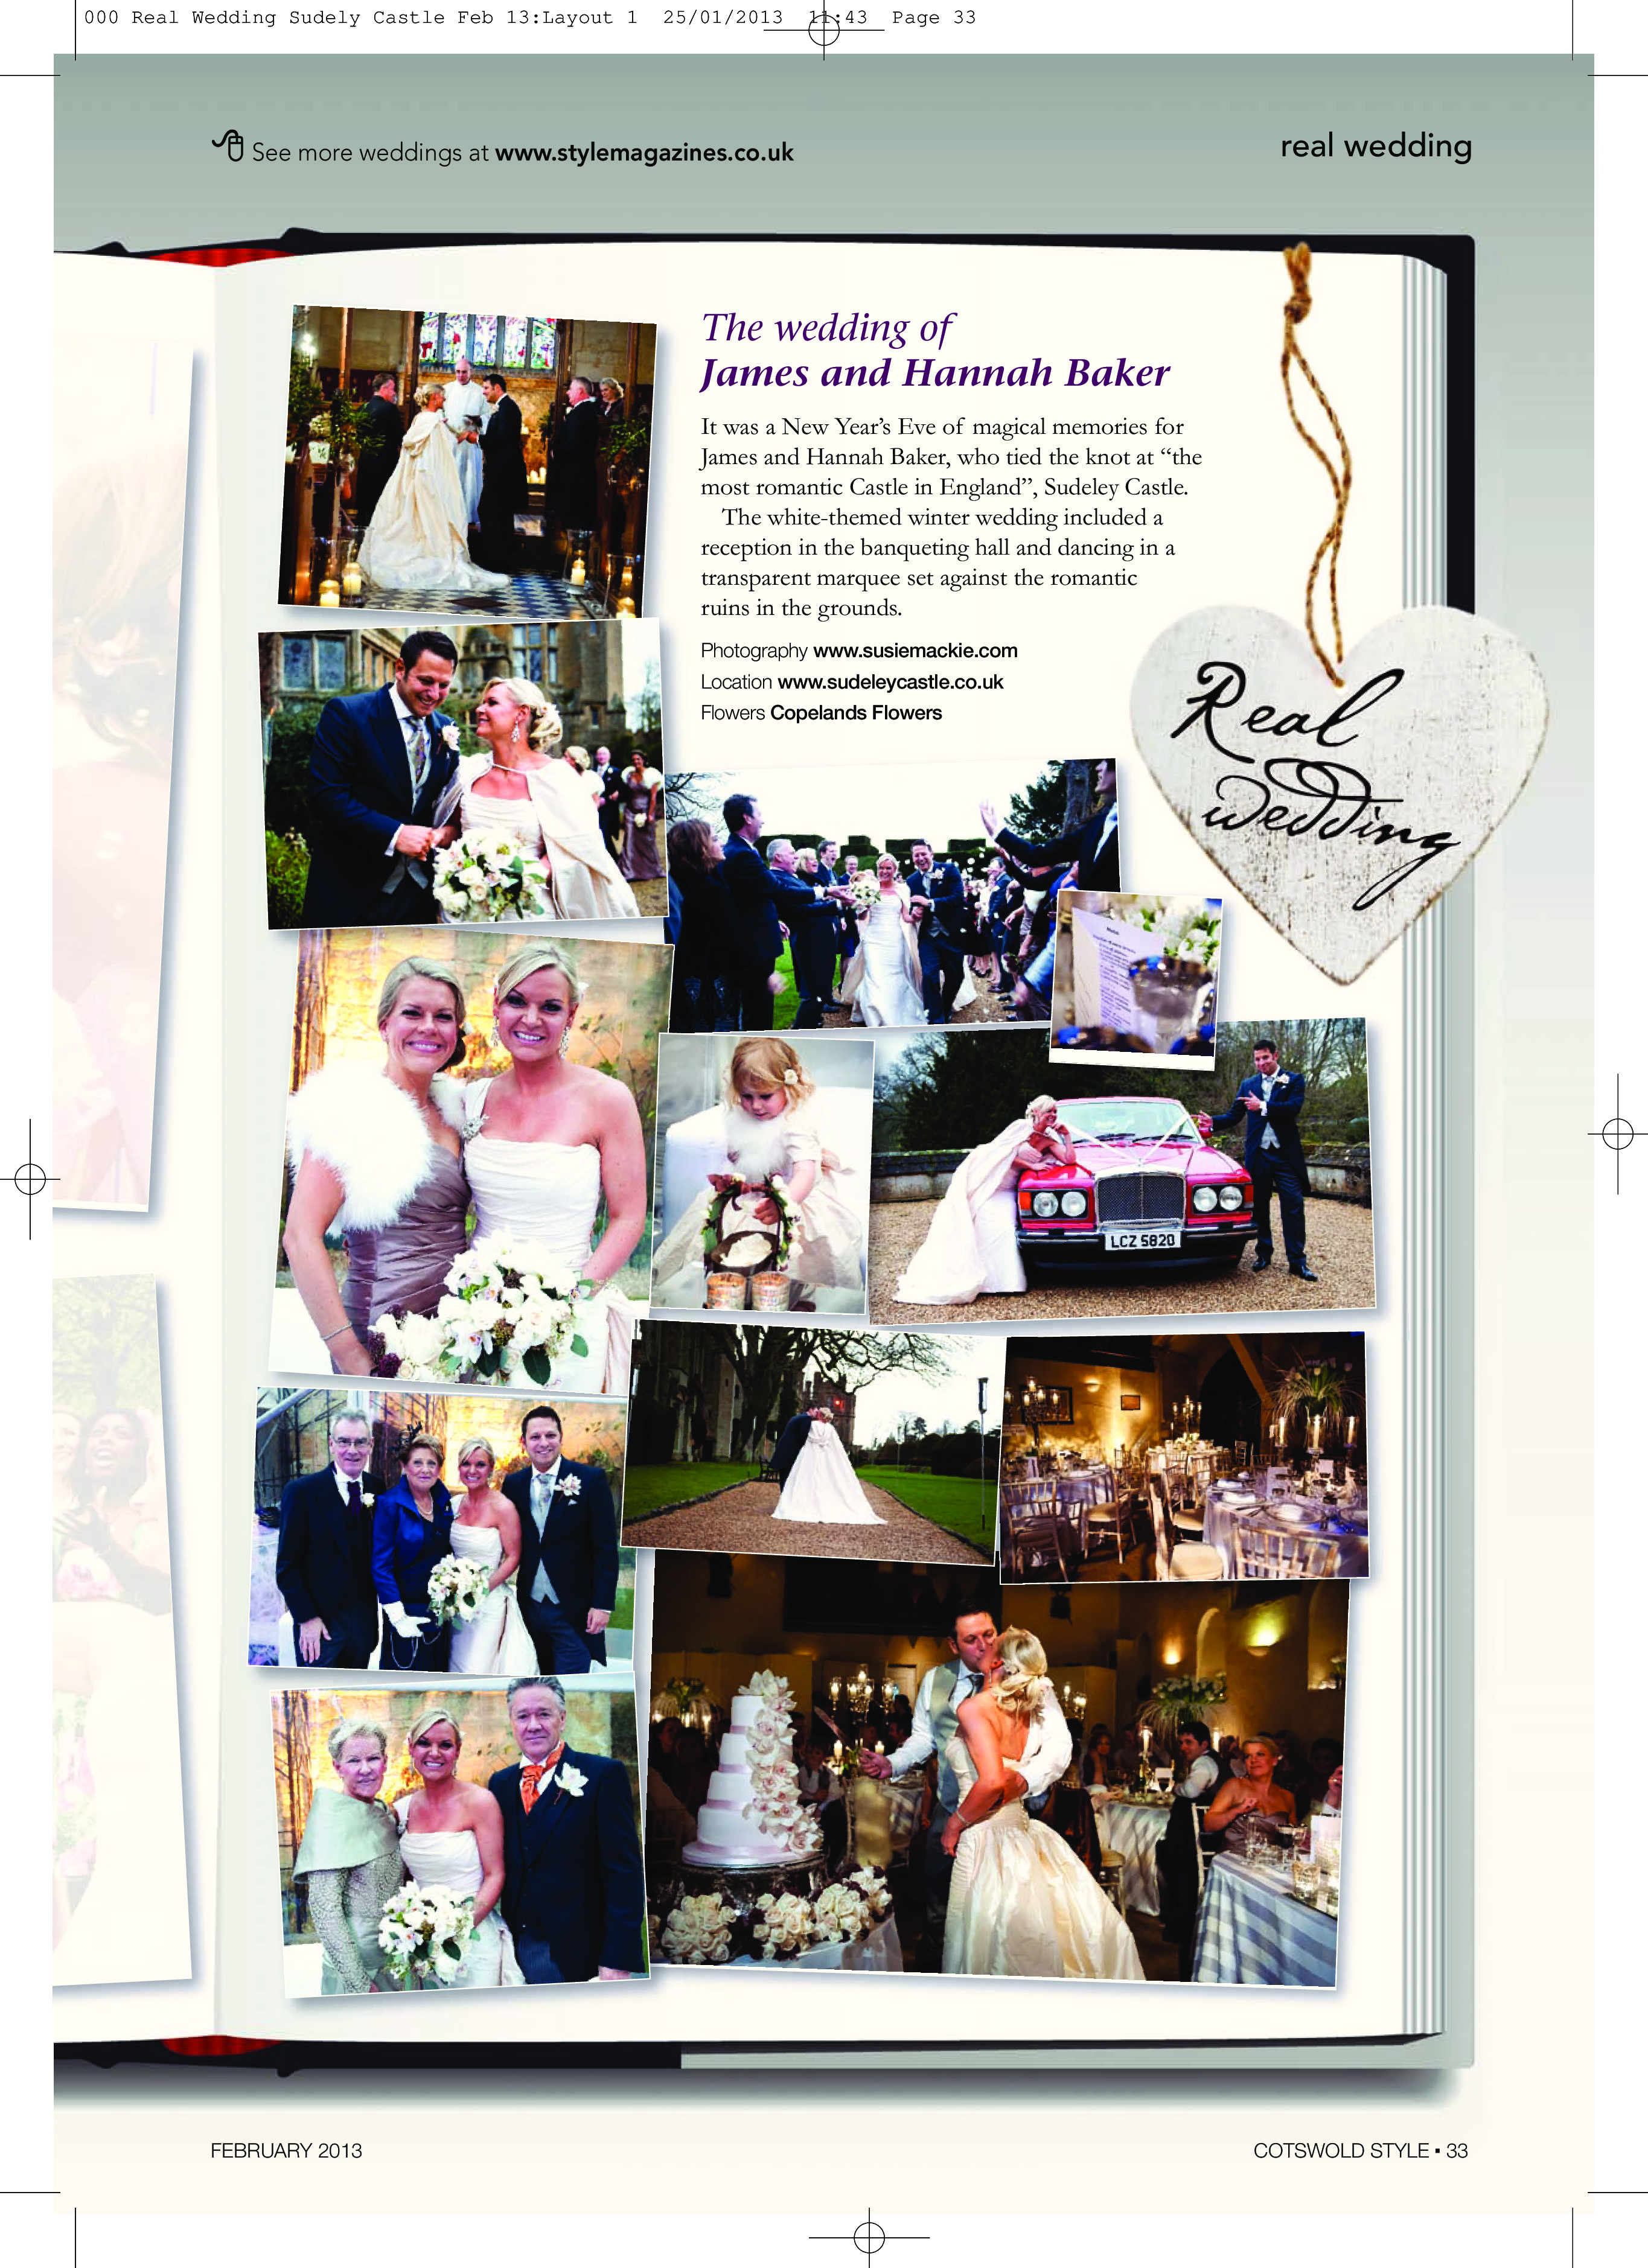 Page from Real Weddings magazine